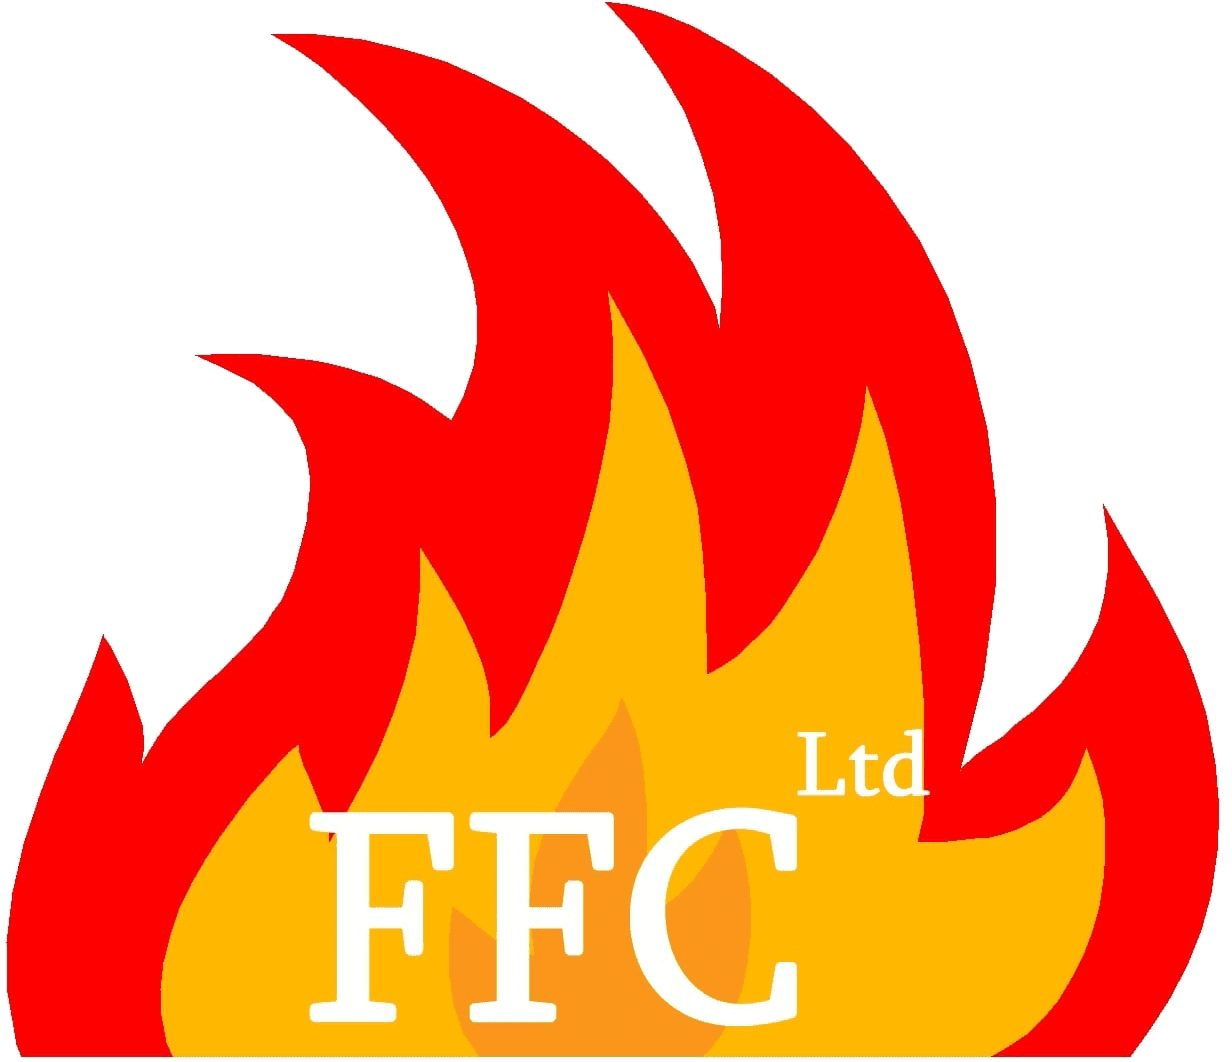 Forensic Fire Consultants Limited